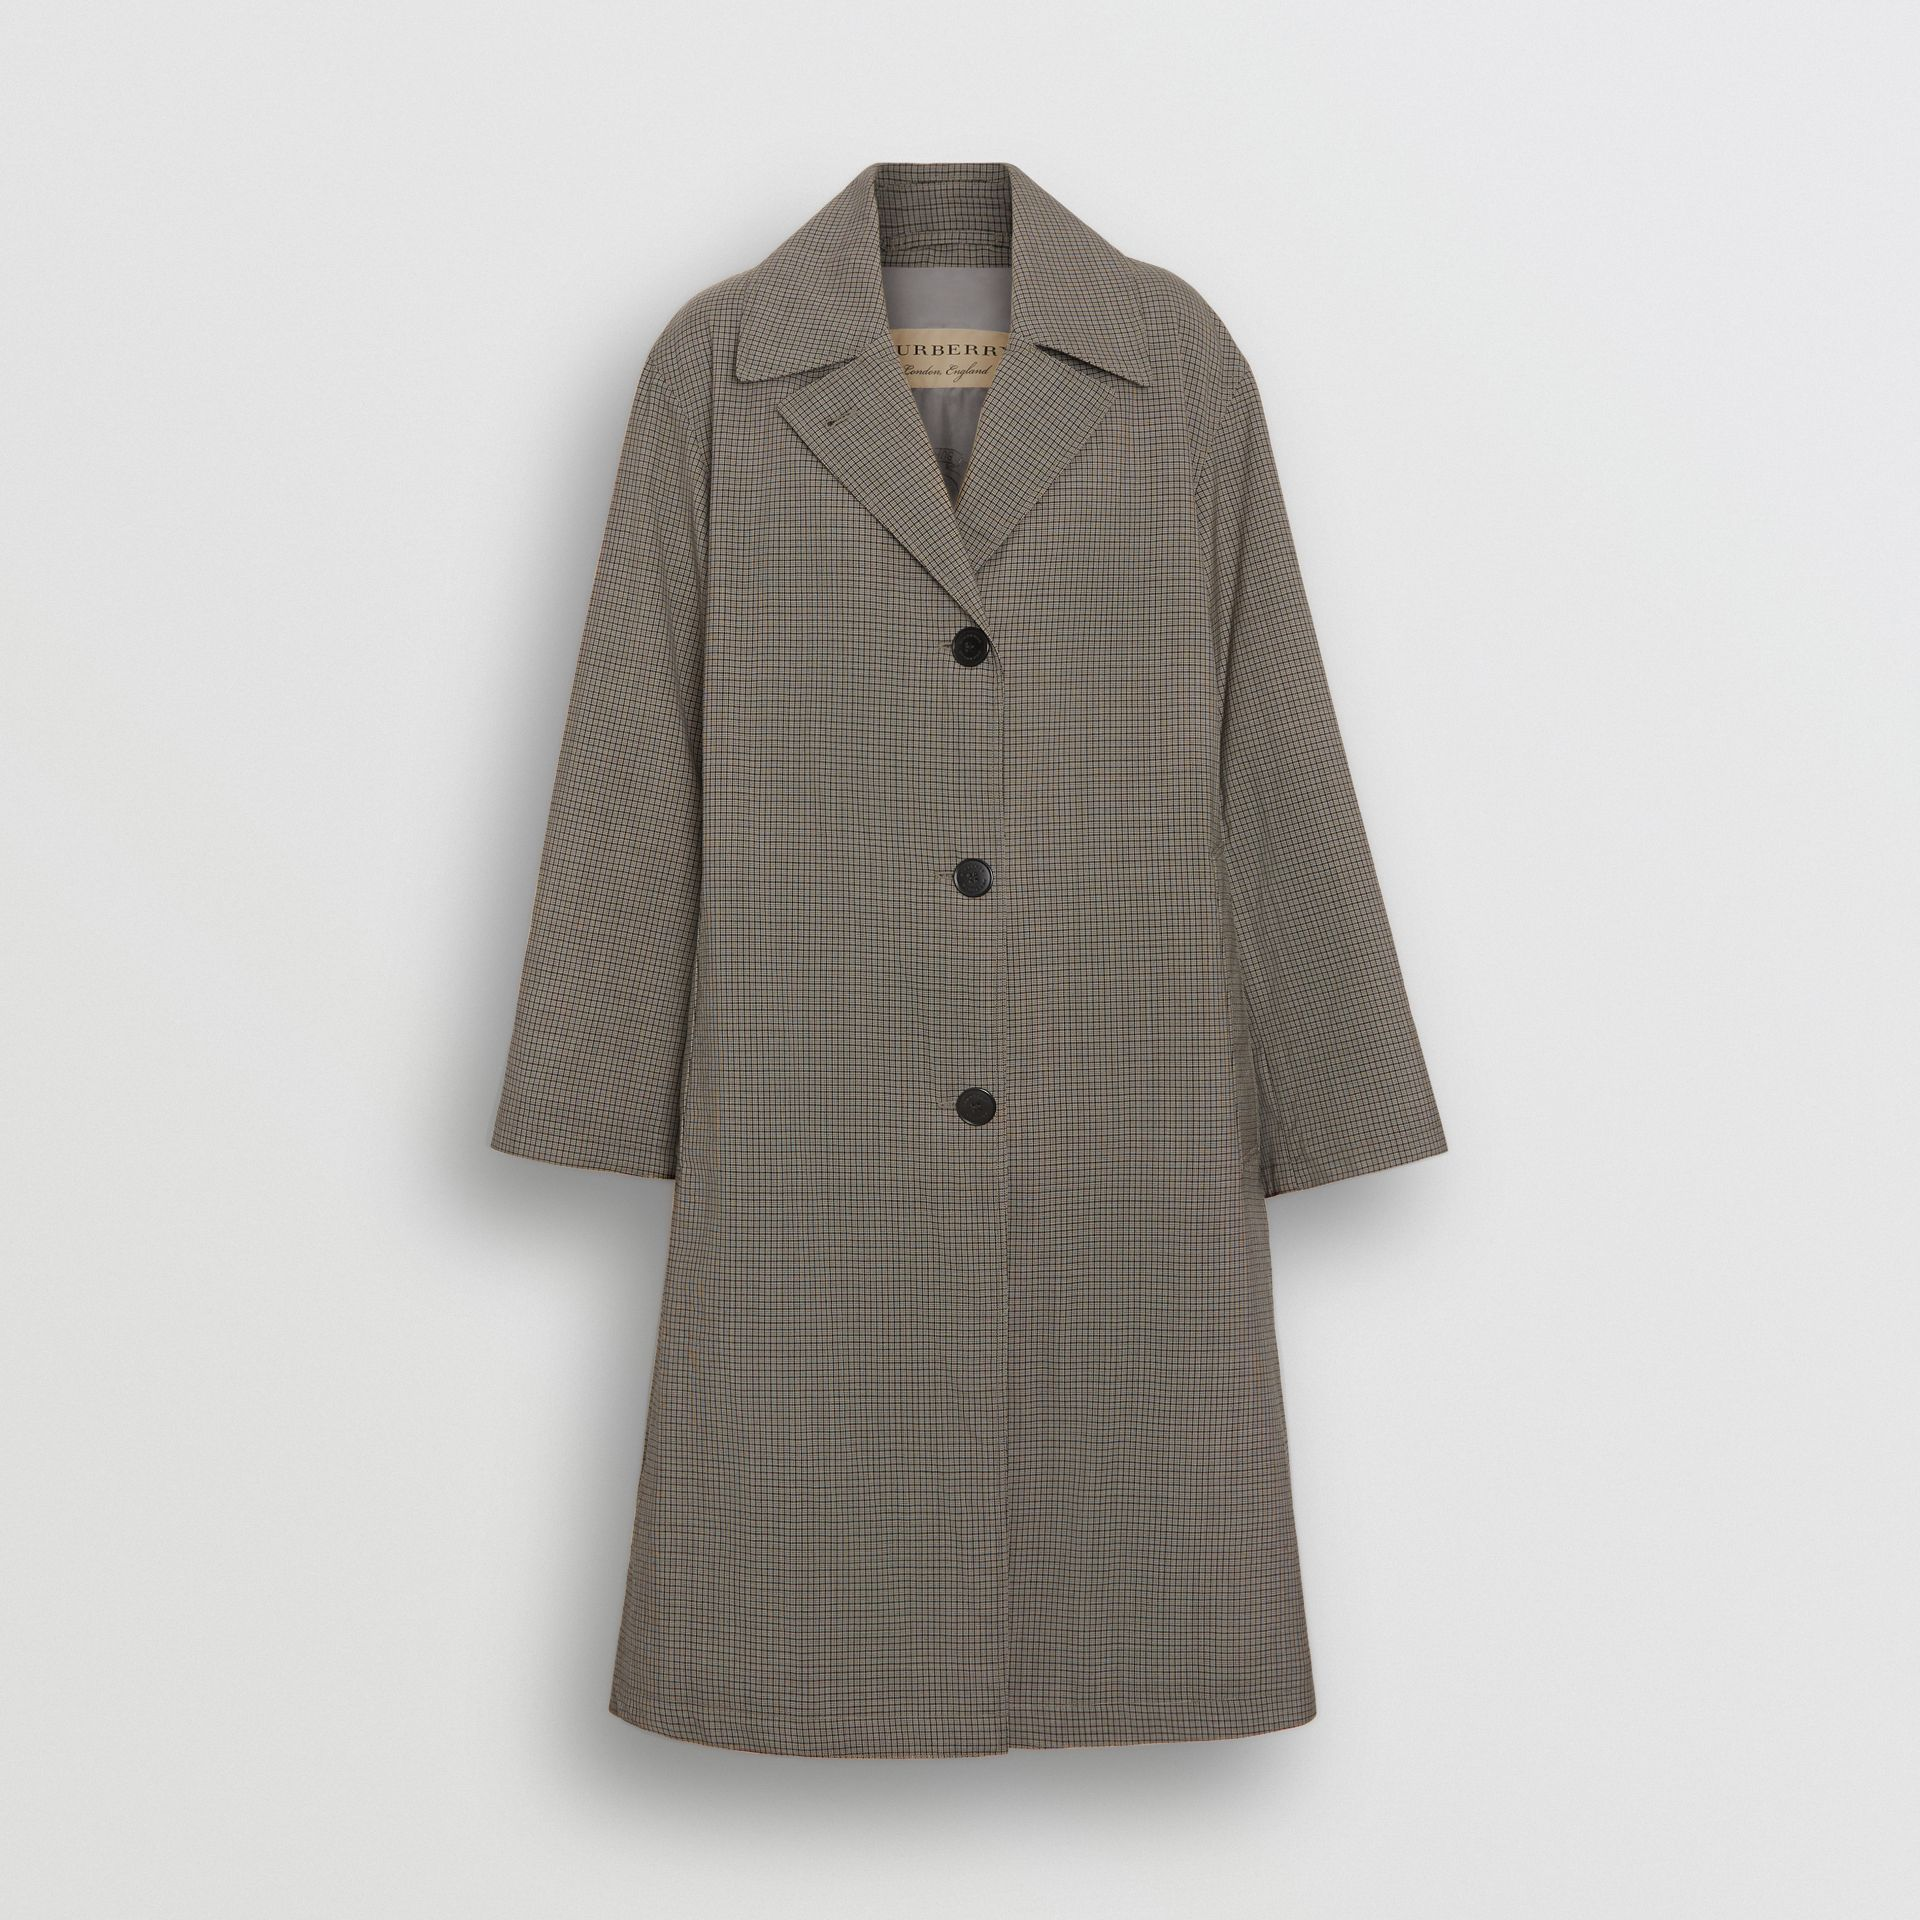 Check Wool Oversized Coat in Taupe - Women | Burberry Australia - gallery image 3